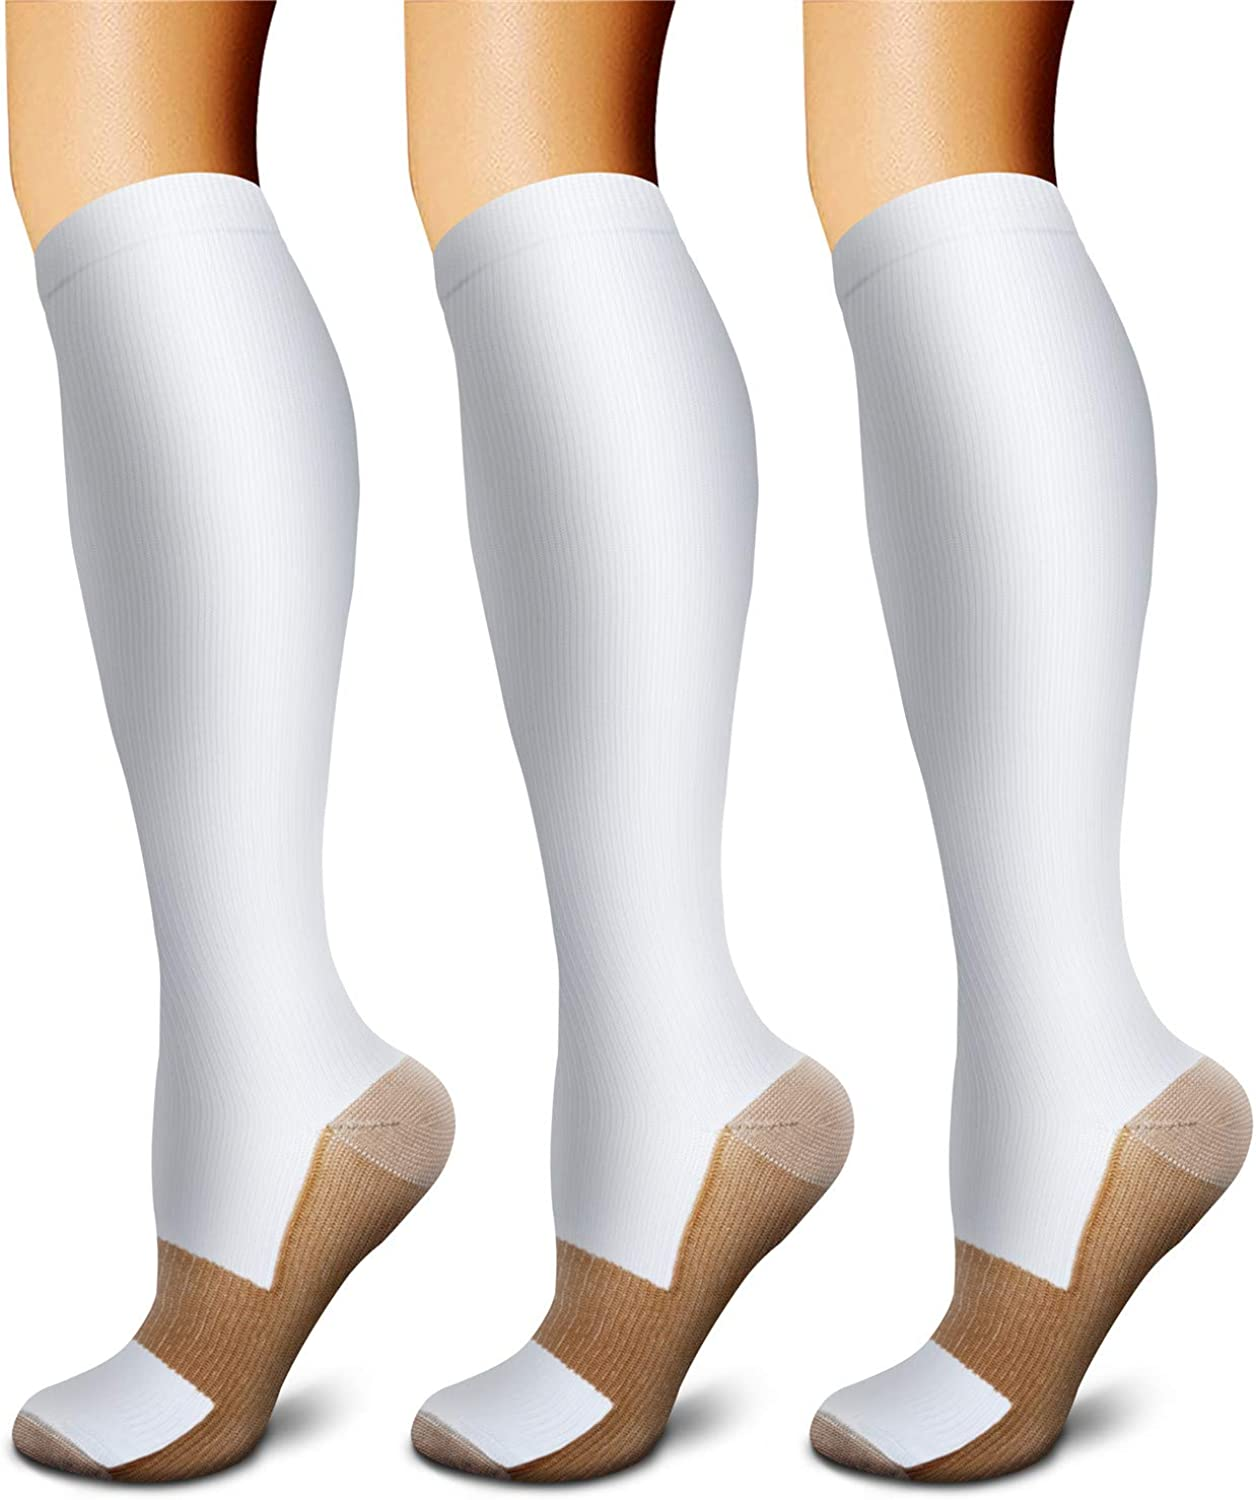 Copper Compression Socks (3 Pairs) 15-20 mmHg is Best Athletic & Daily for Men & Women, Running, Flight Travel, Climbing: Clothing